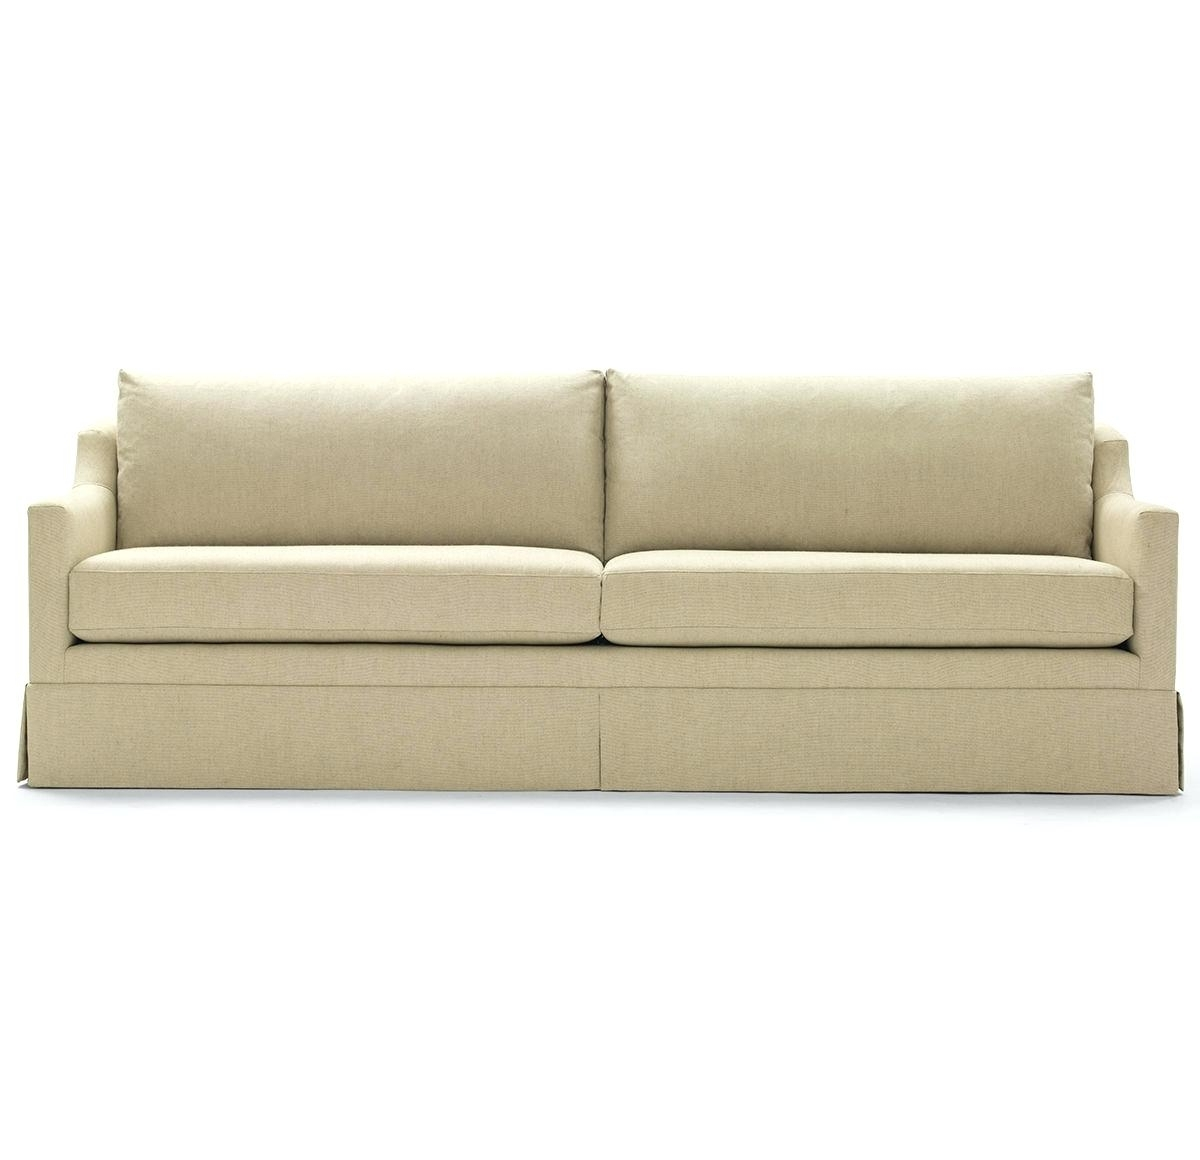 Halifax Sectional Sofas In Latest Sectional Sofa Bed Halifax – Adriane (View 9 of 20)